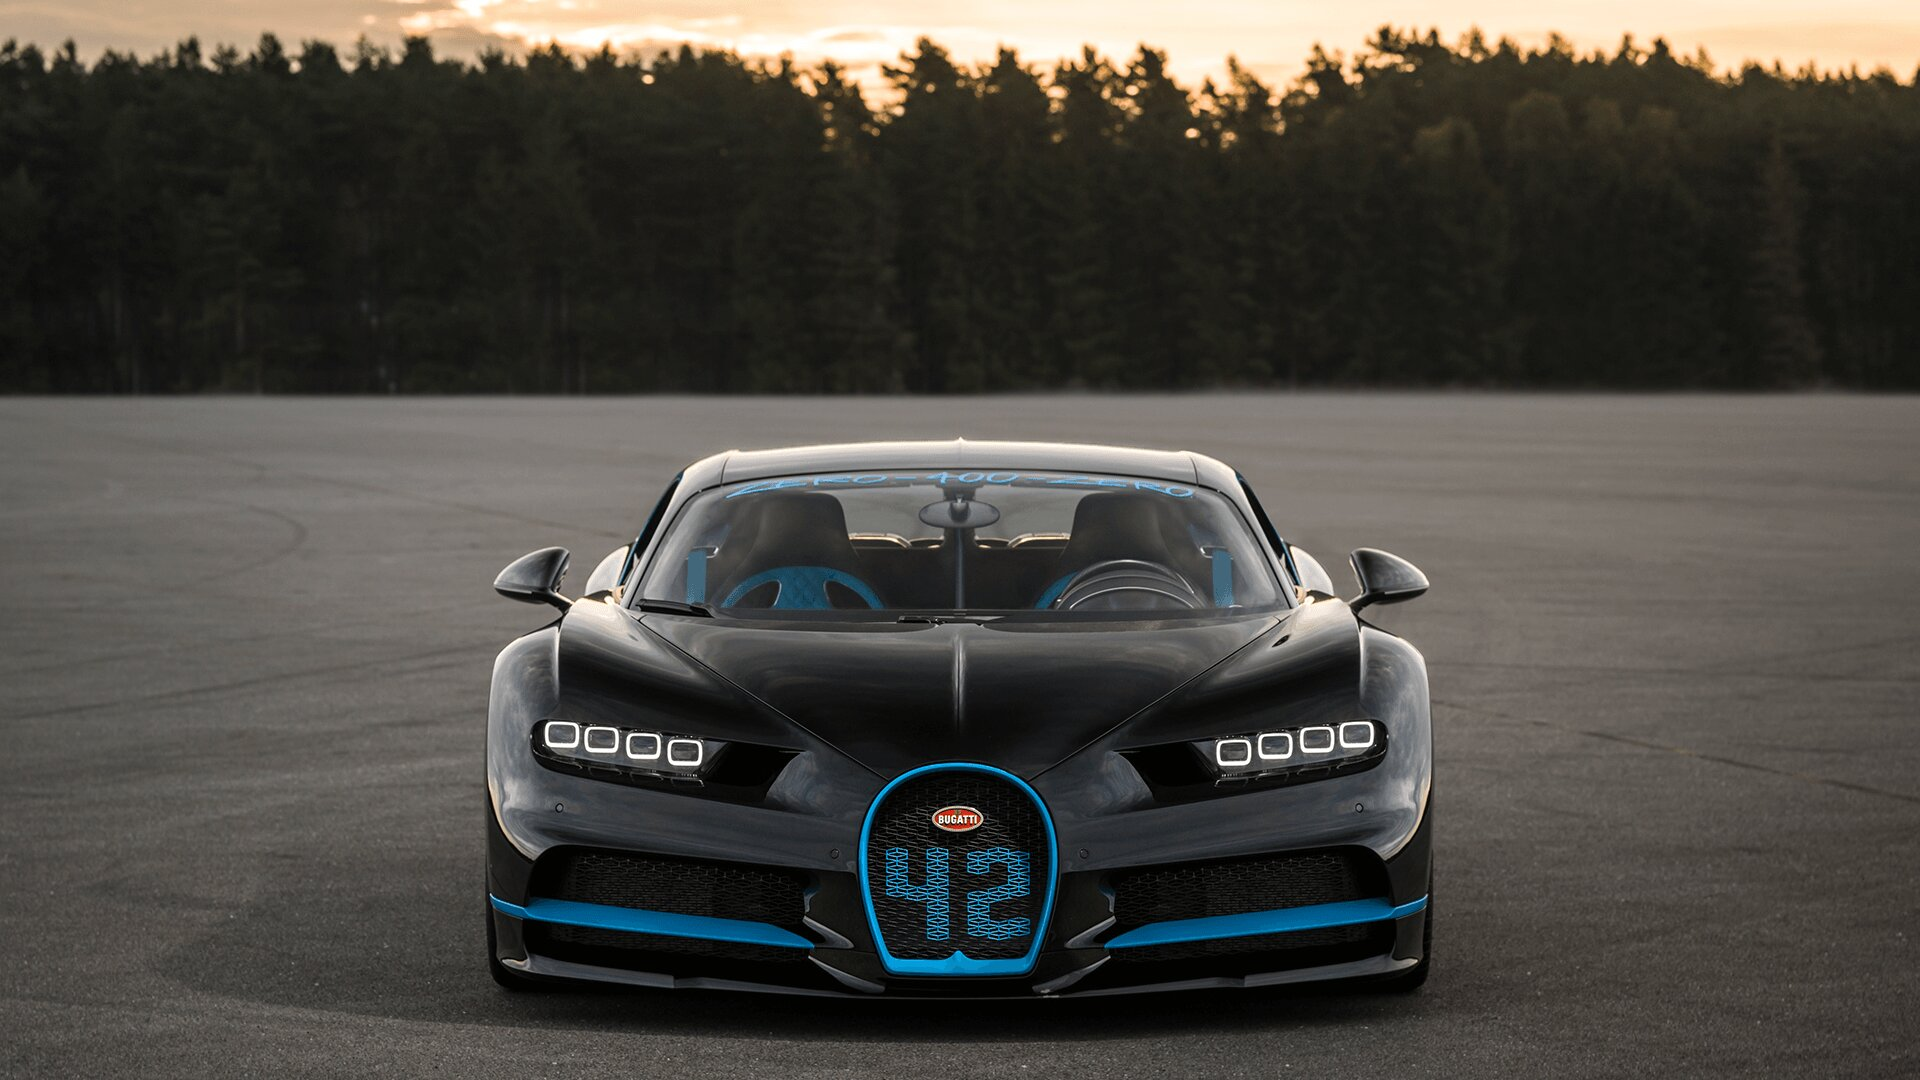 0-400-0 km/h in 42 seconds: the Chiron sets world record